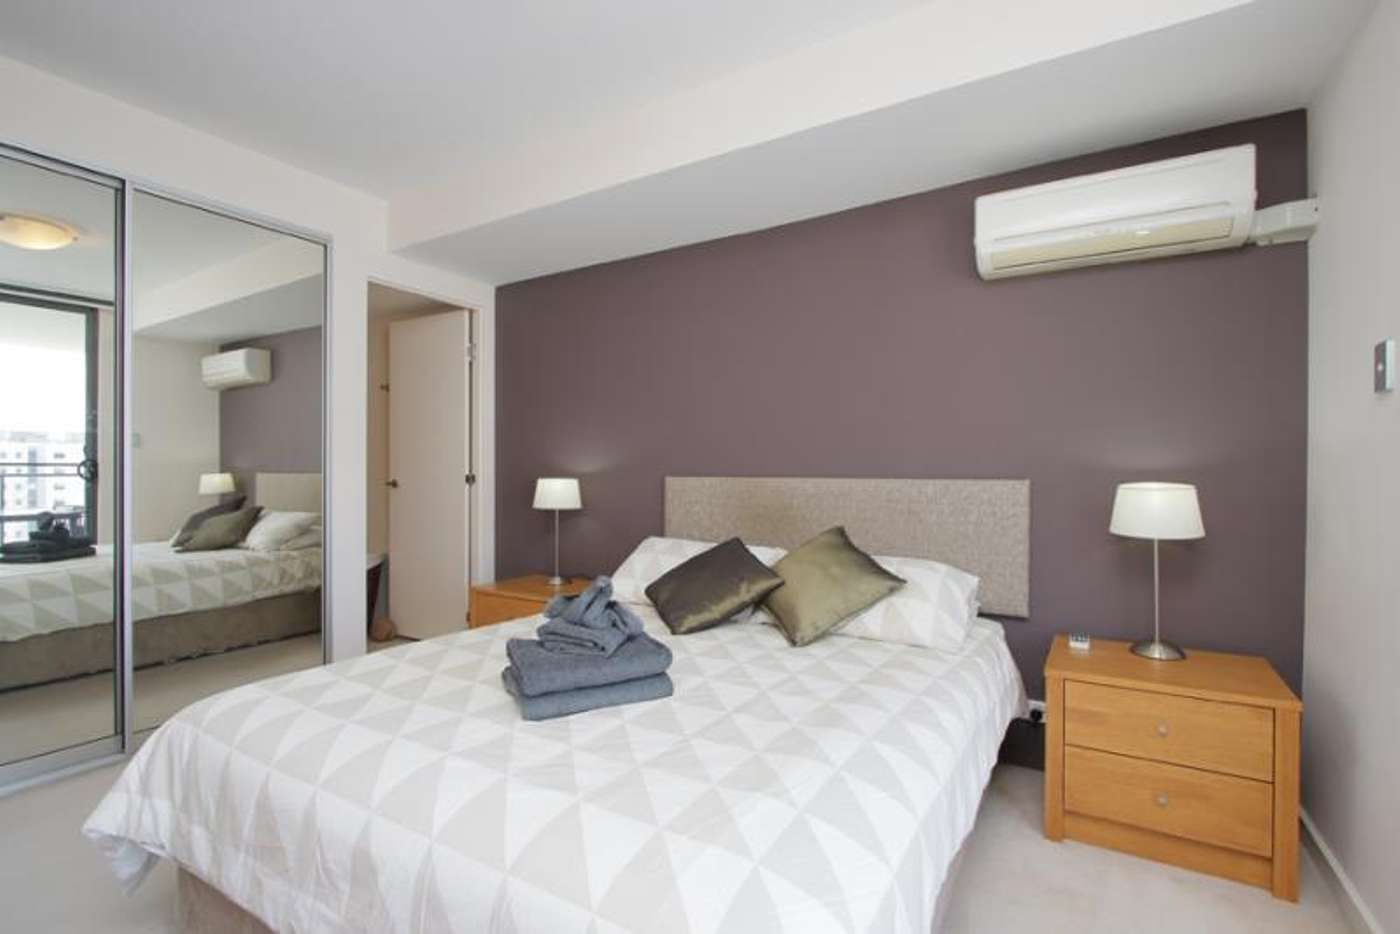 Main view of Homely apartment listing, 169/369 Hay Street, Perth WA 6000